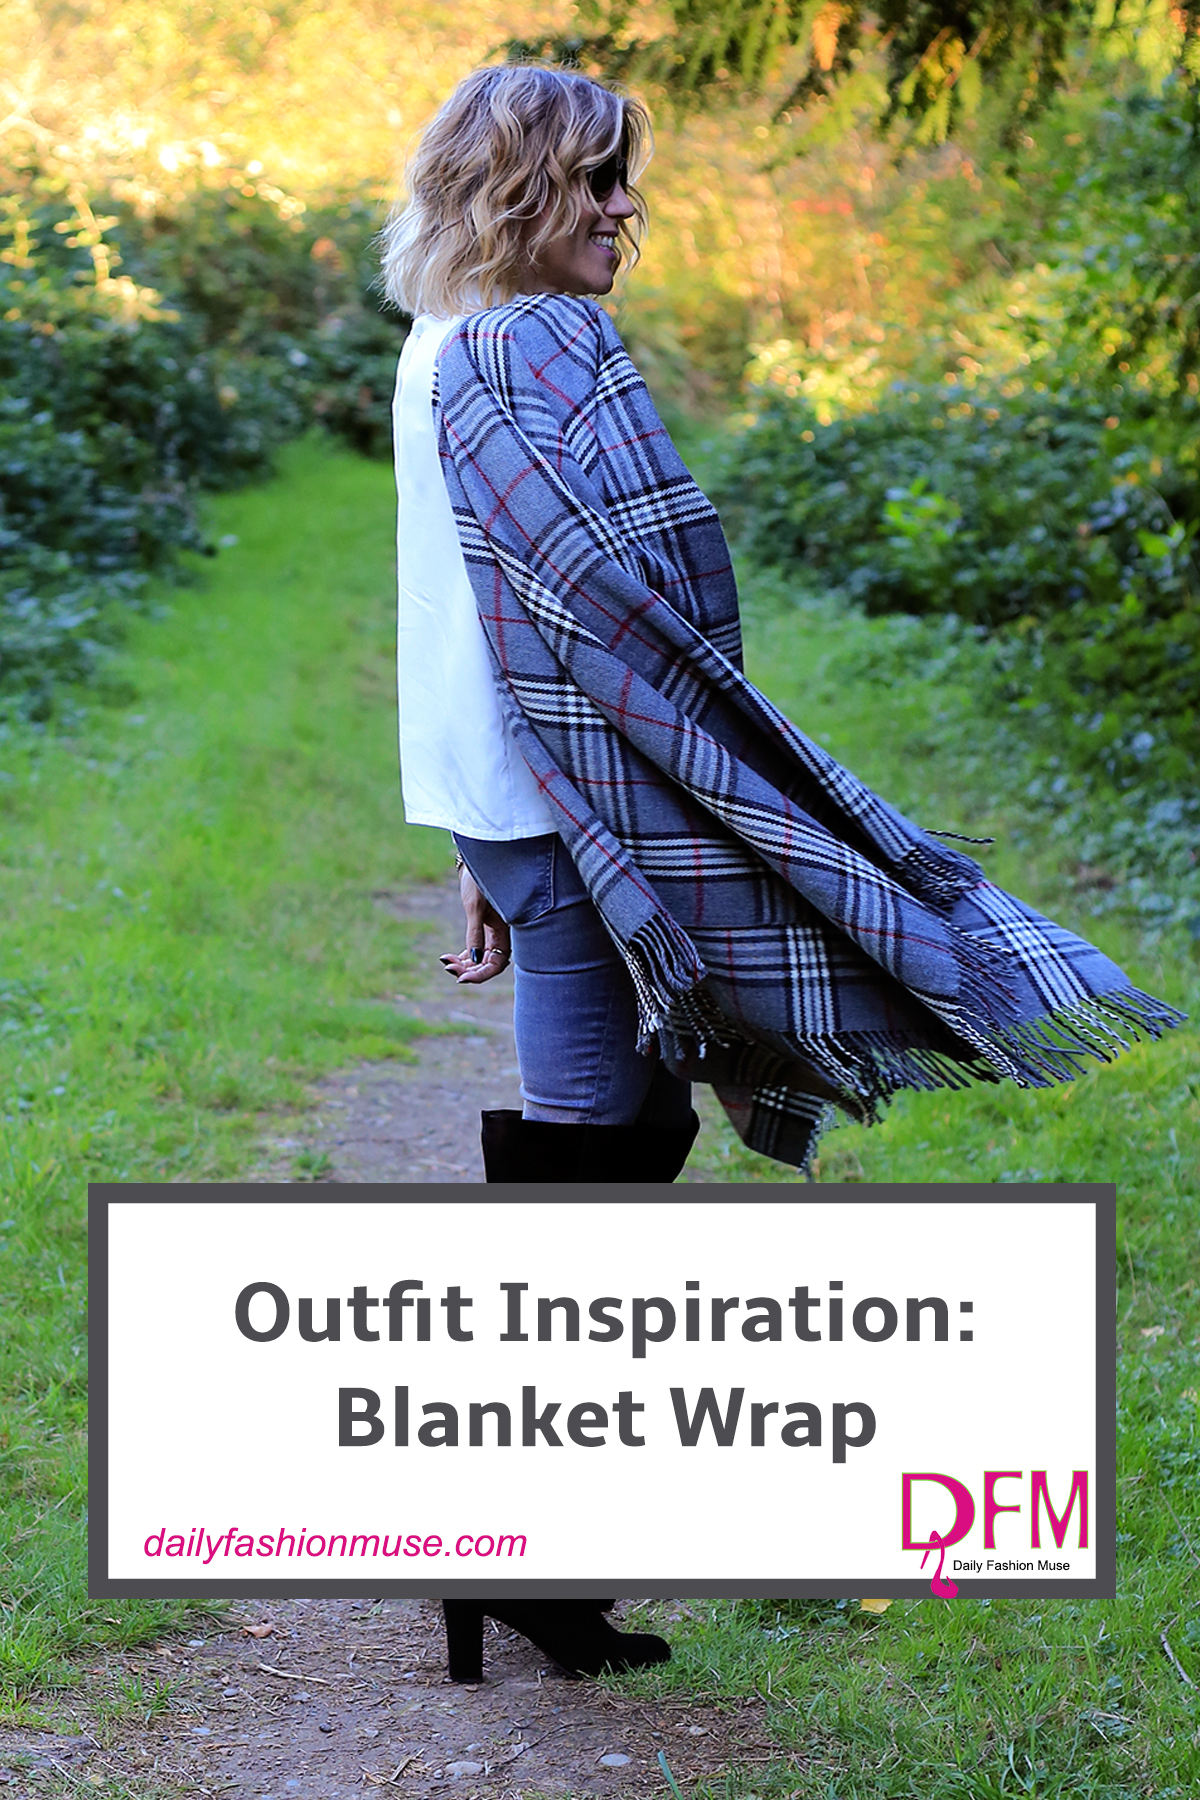 A blanket wrap is the perfect accessory in the Fall. Not only is it stylish but very practical for keeping out the cold.